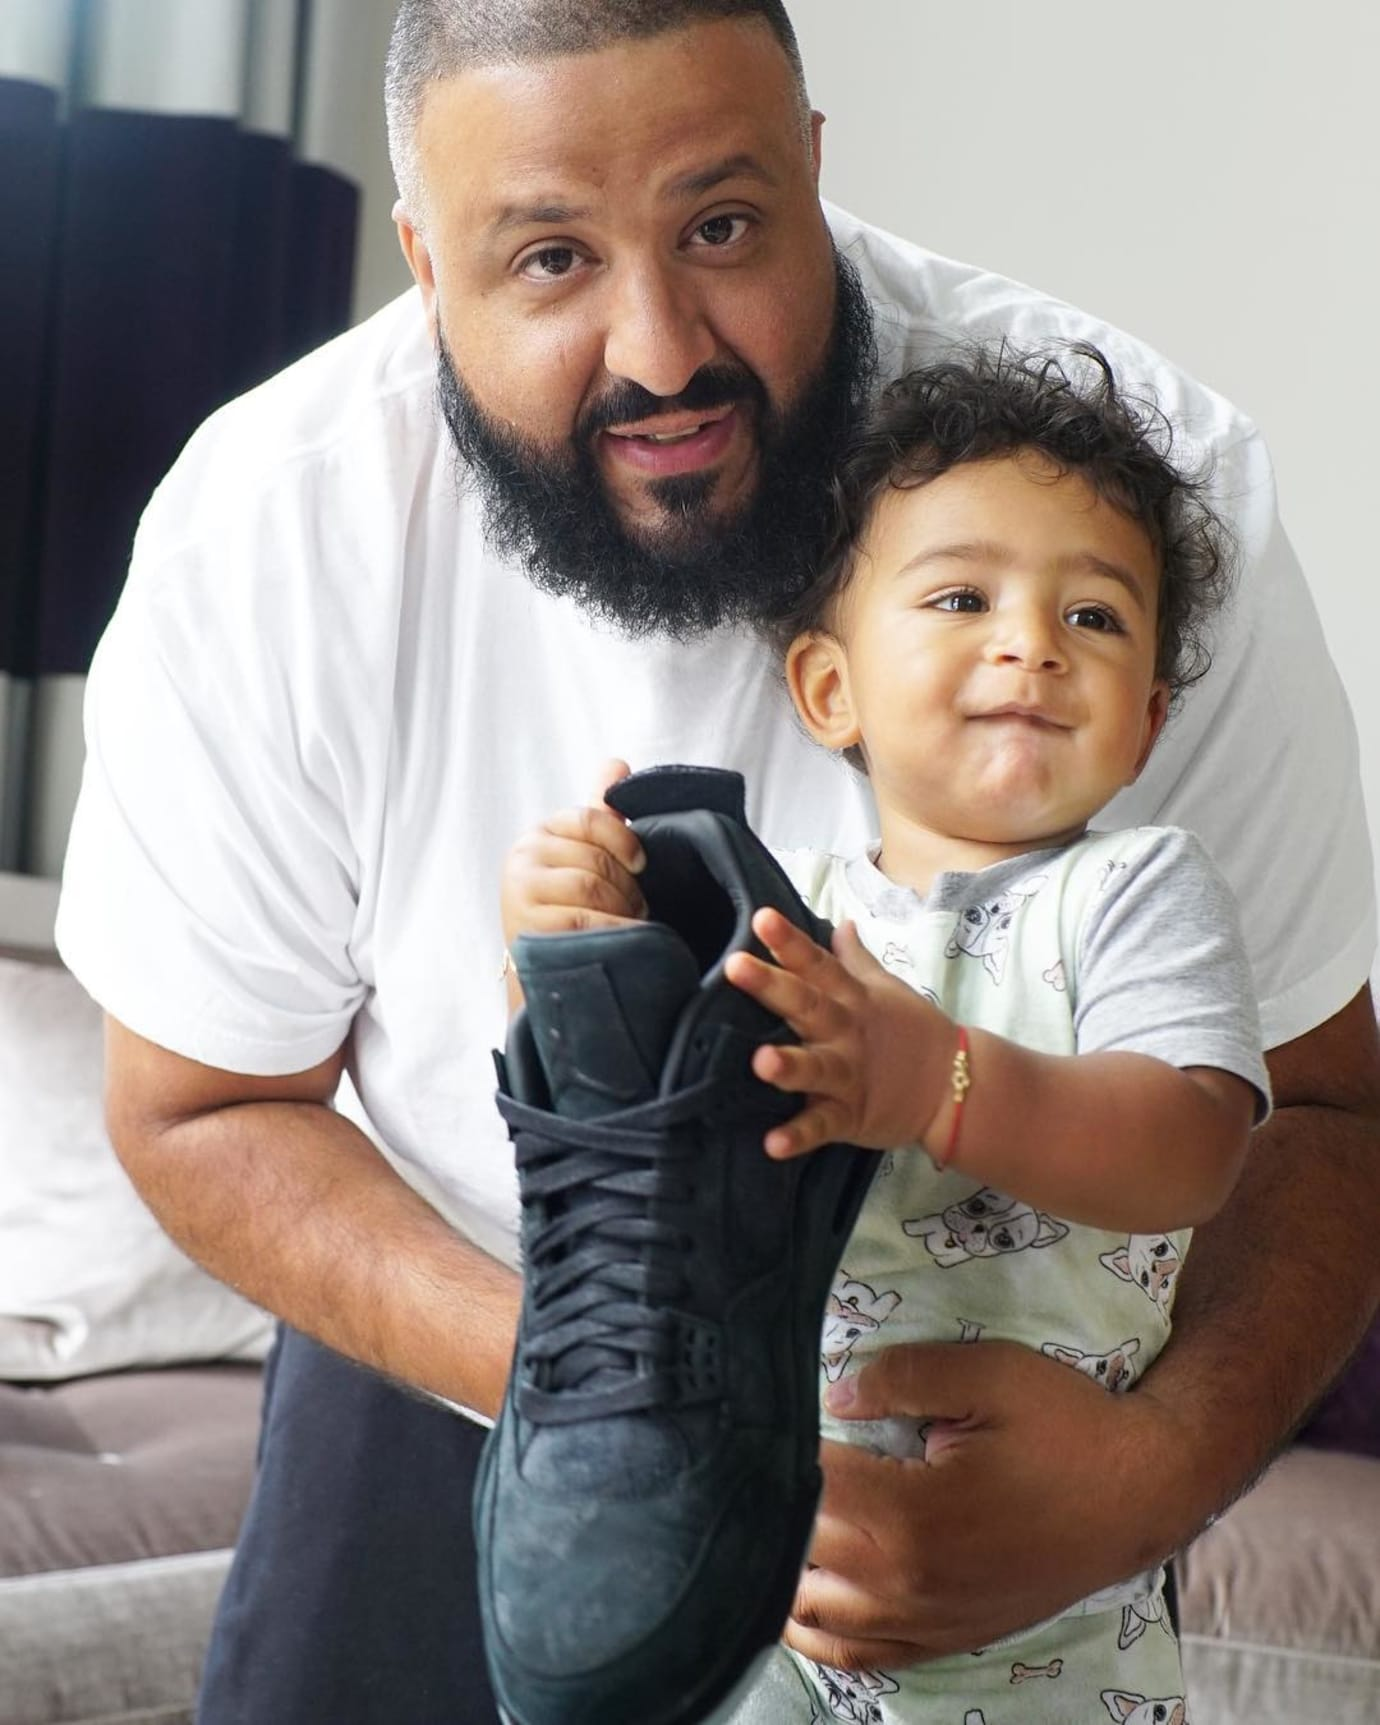 Air Jordan 4 Kaws Black DJ Khaled